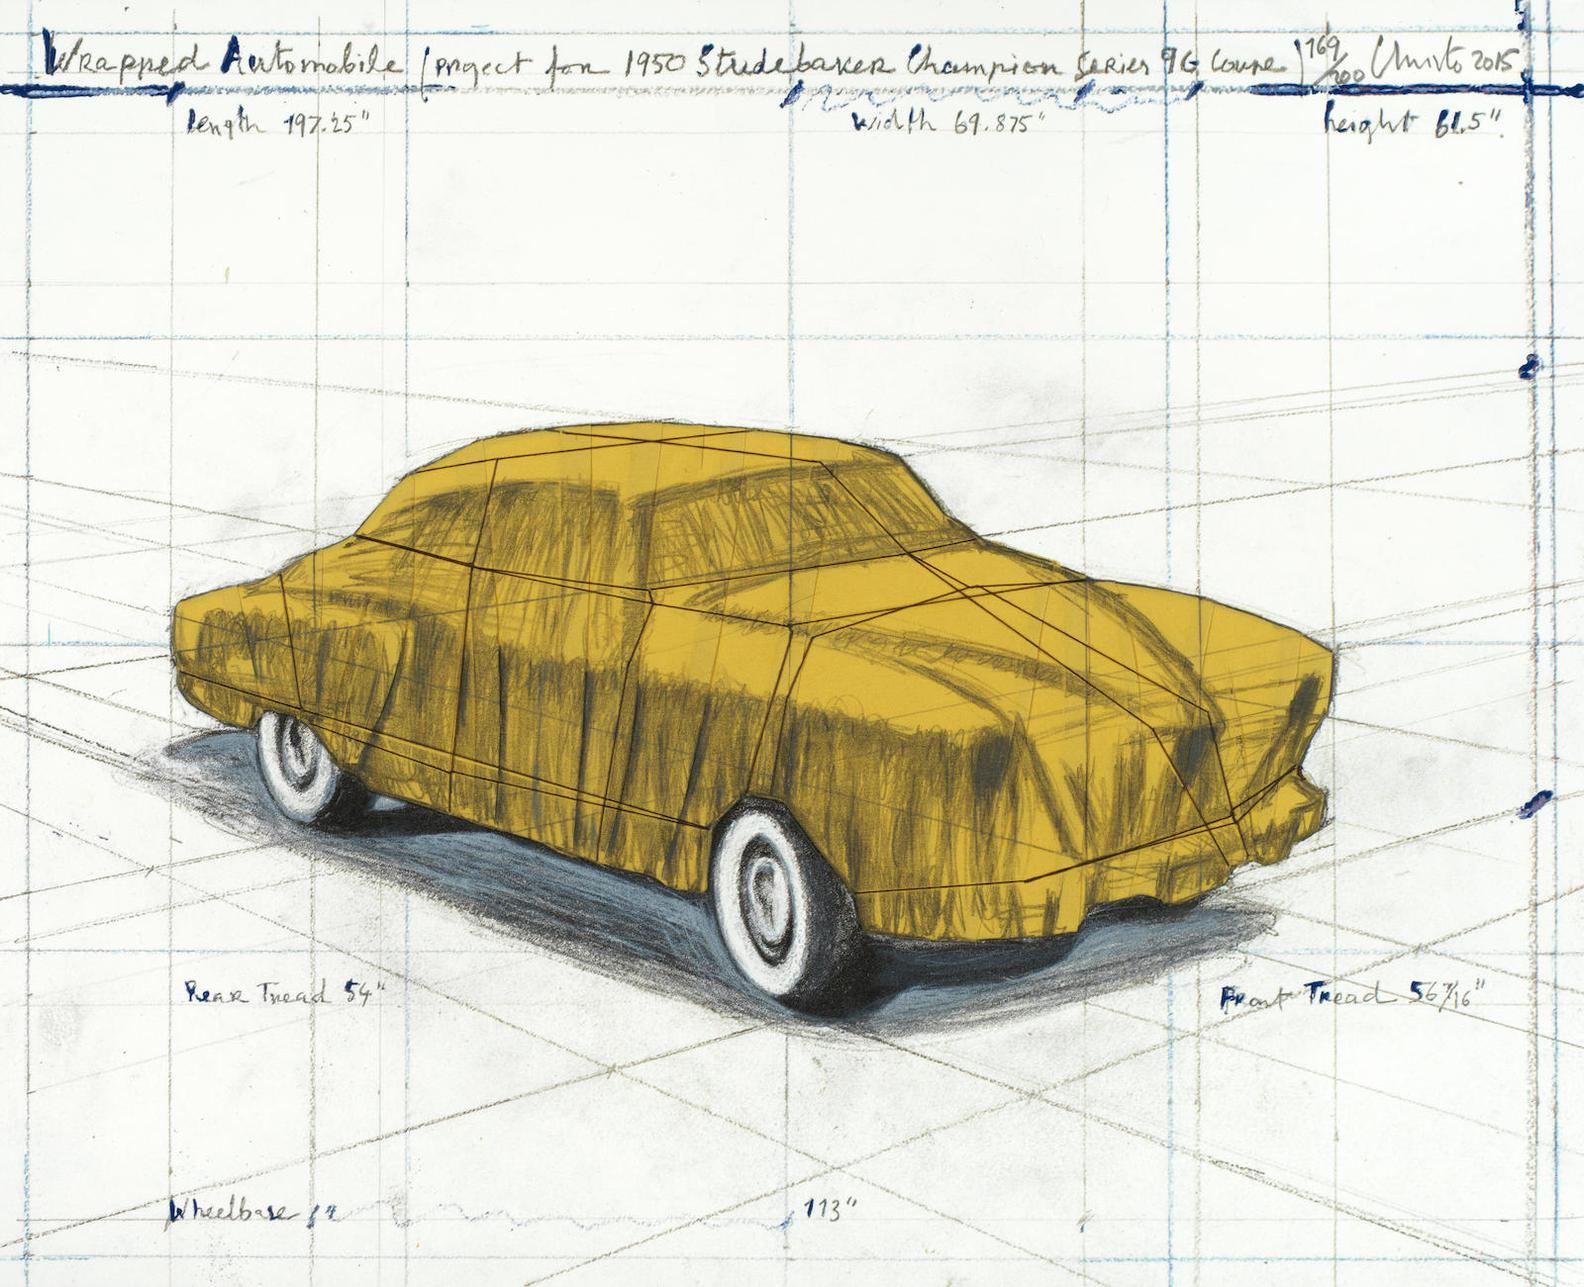 Christo and Jeanne-Claude-Wrapped Automobile (Project For 1950 Studebaker Champion, Series 9 G Coupe)-2015